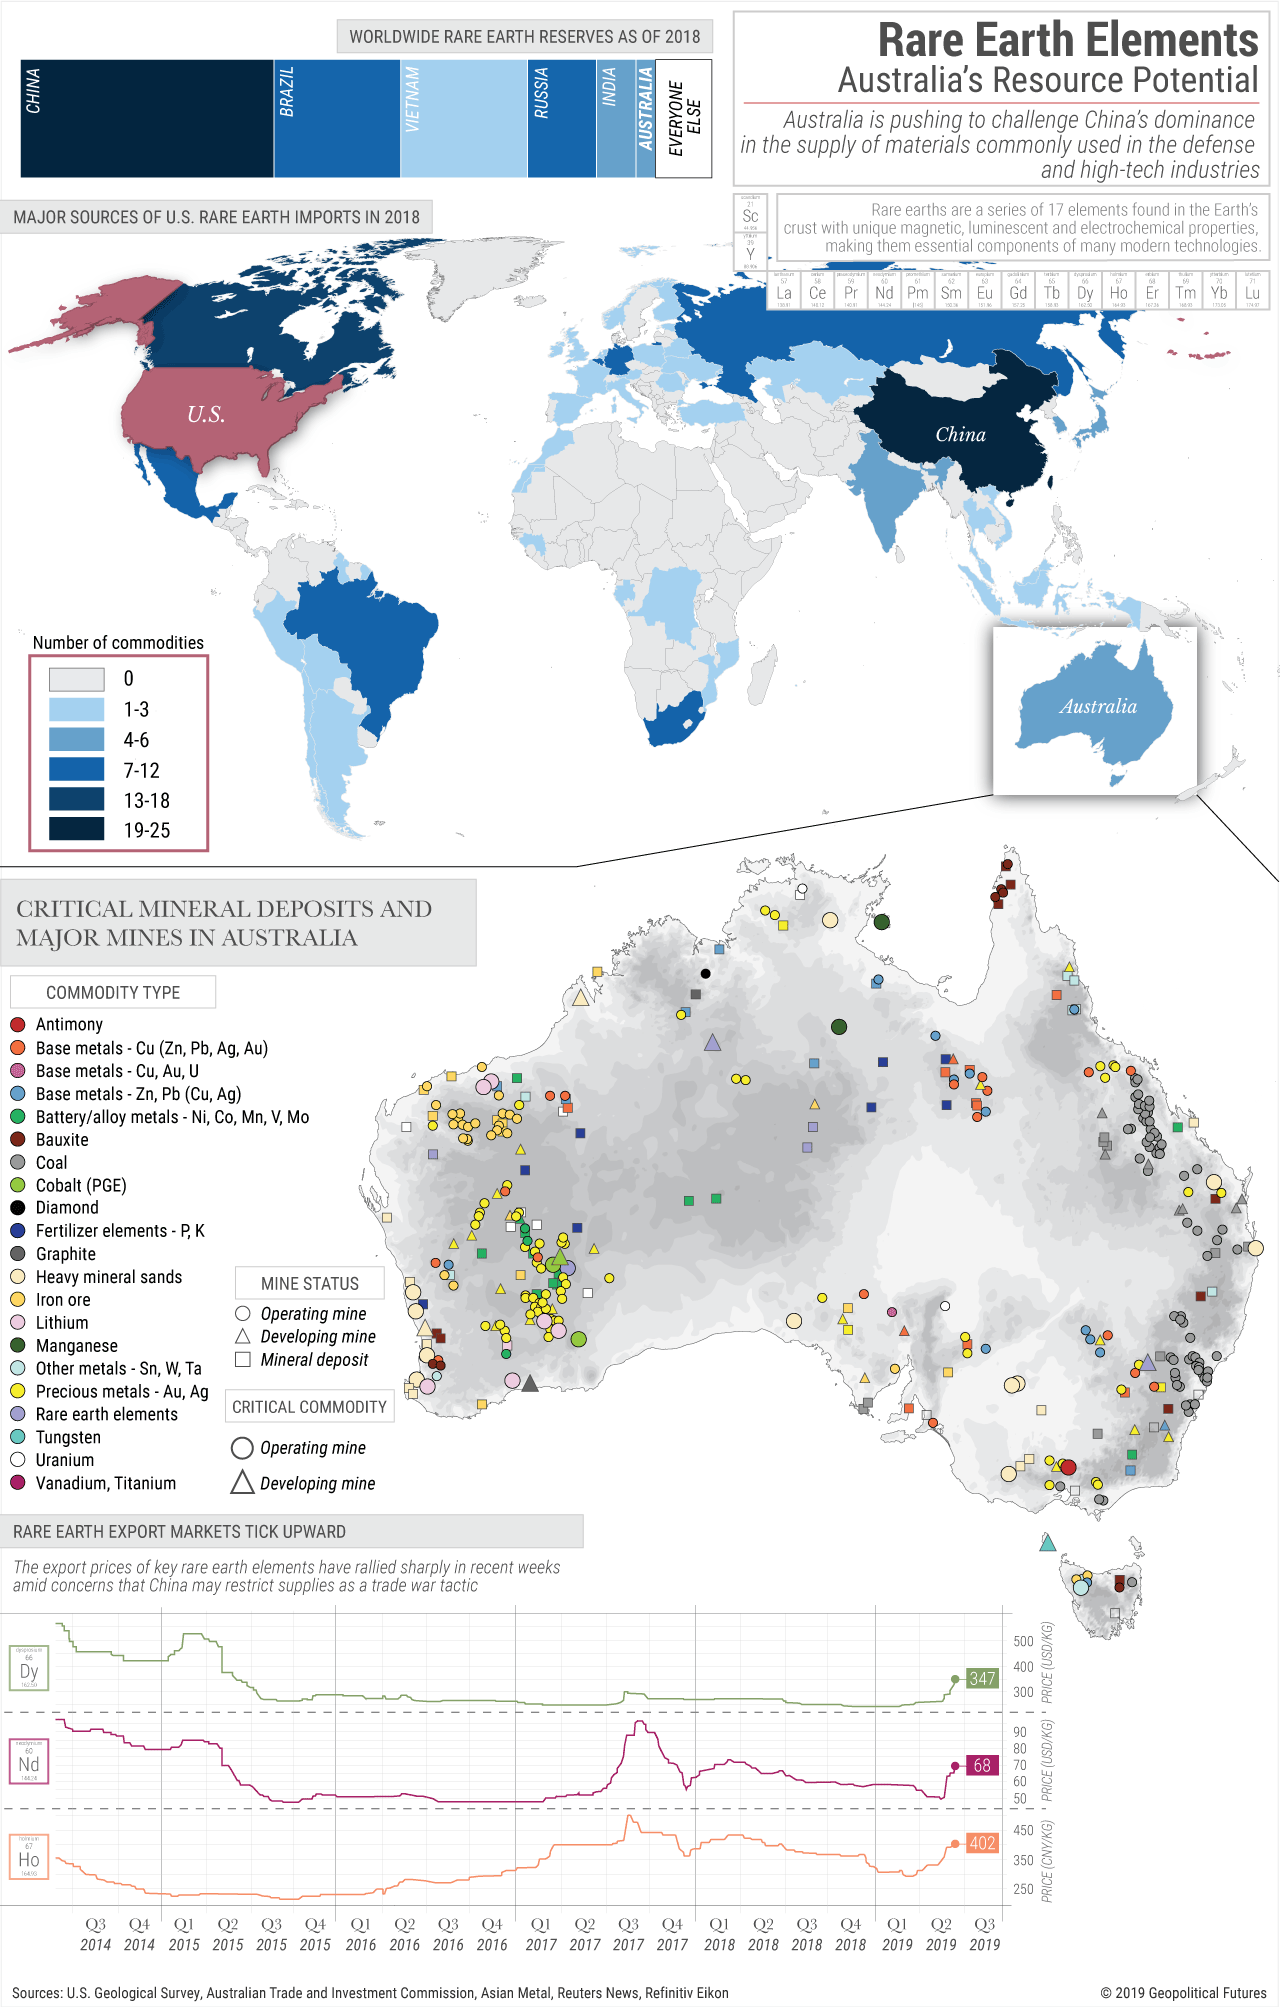 Australia's Rare Earth Resource Potential